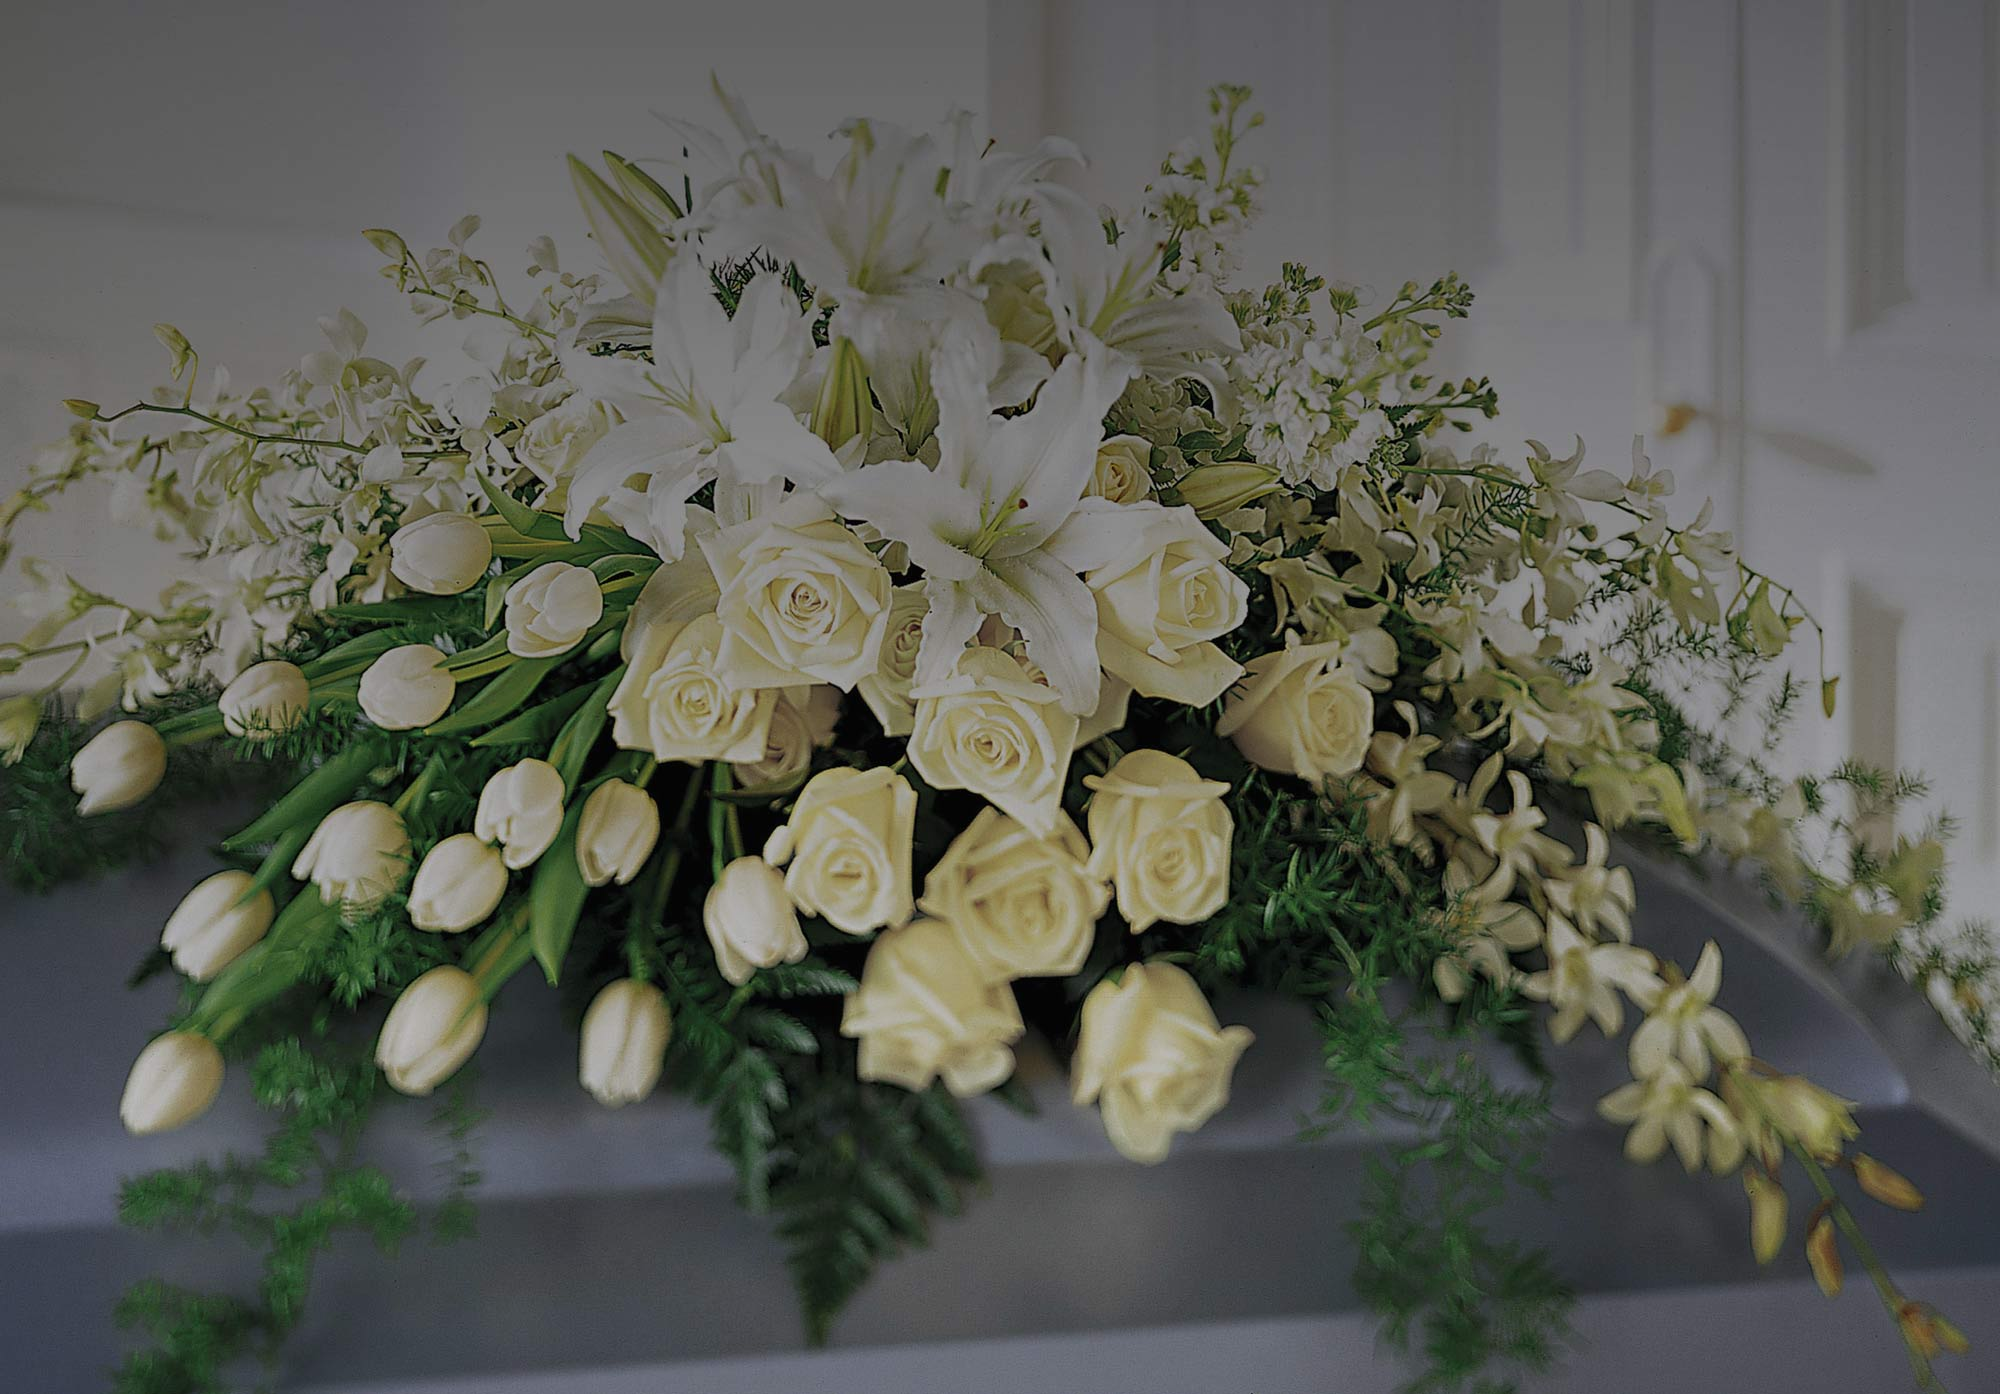 Funeral-Flowers-Background-Image1